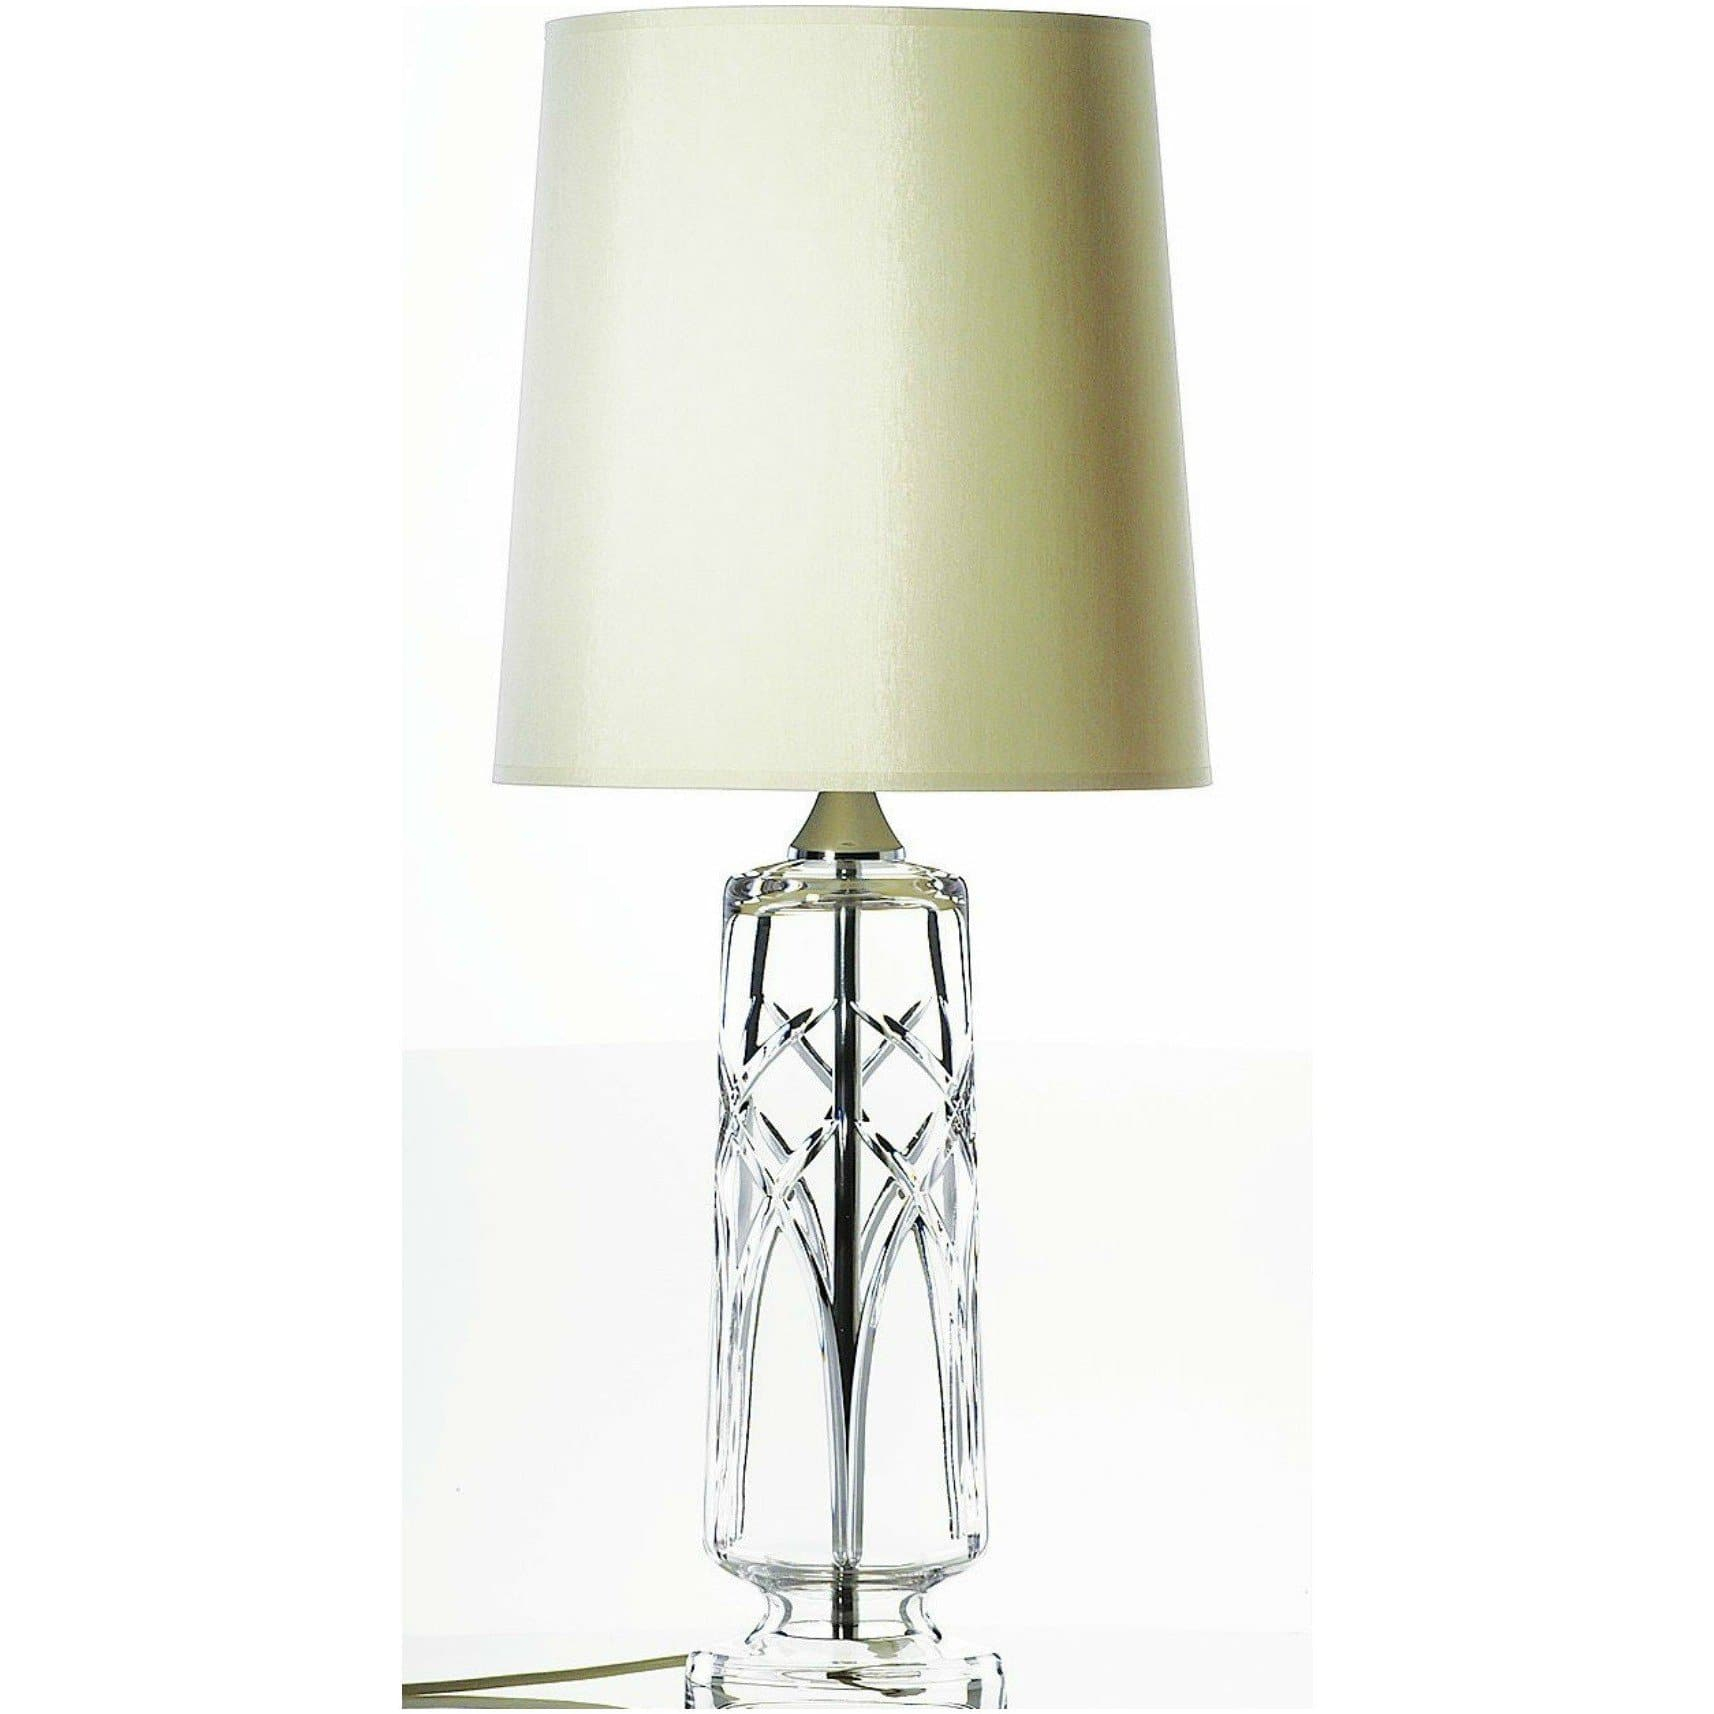 "Mystique 16"" Lamp & Shade IRL/UK Fittings"